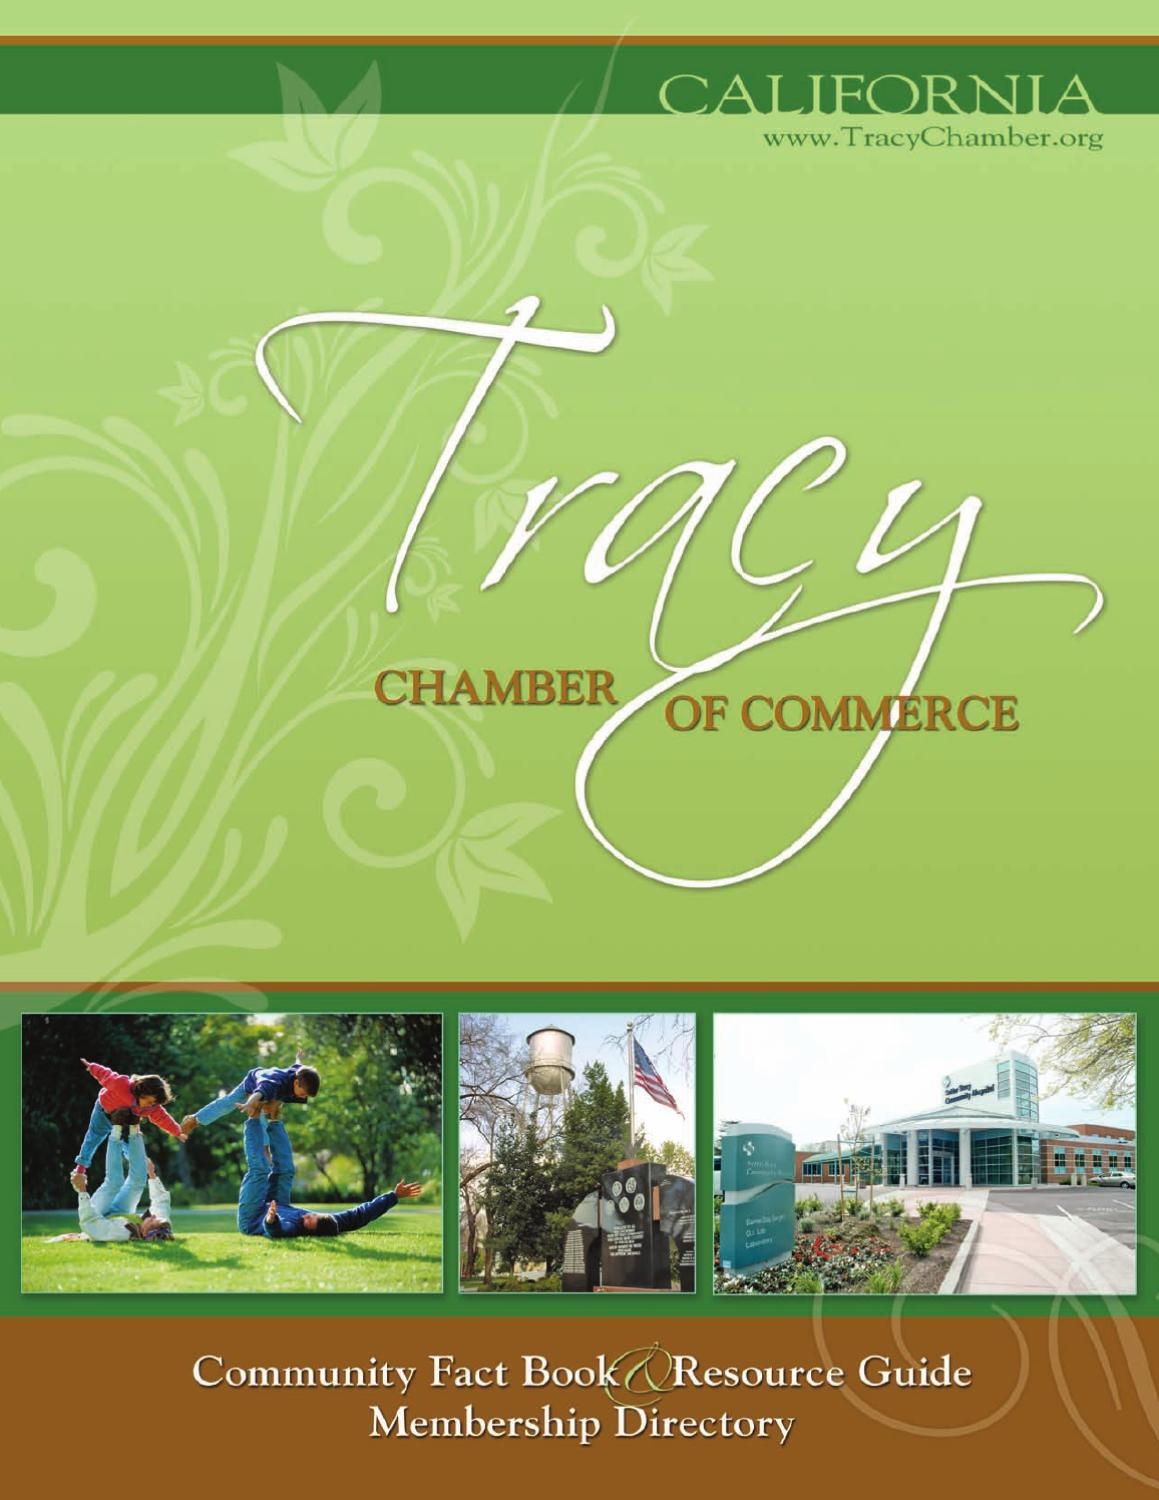 Tracy Ca Community Profile By Townsquare Publications Llc Issuu